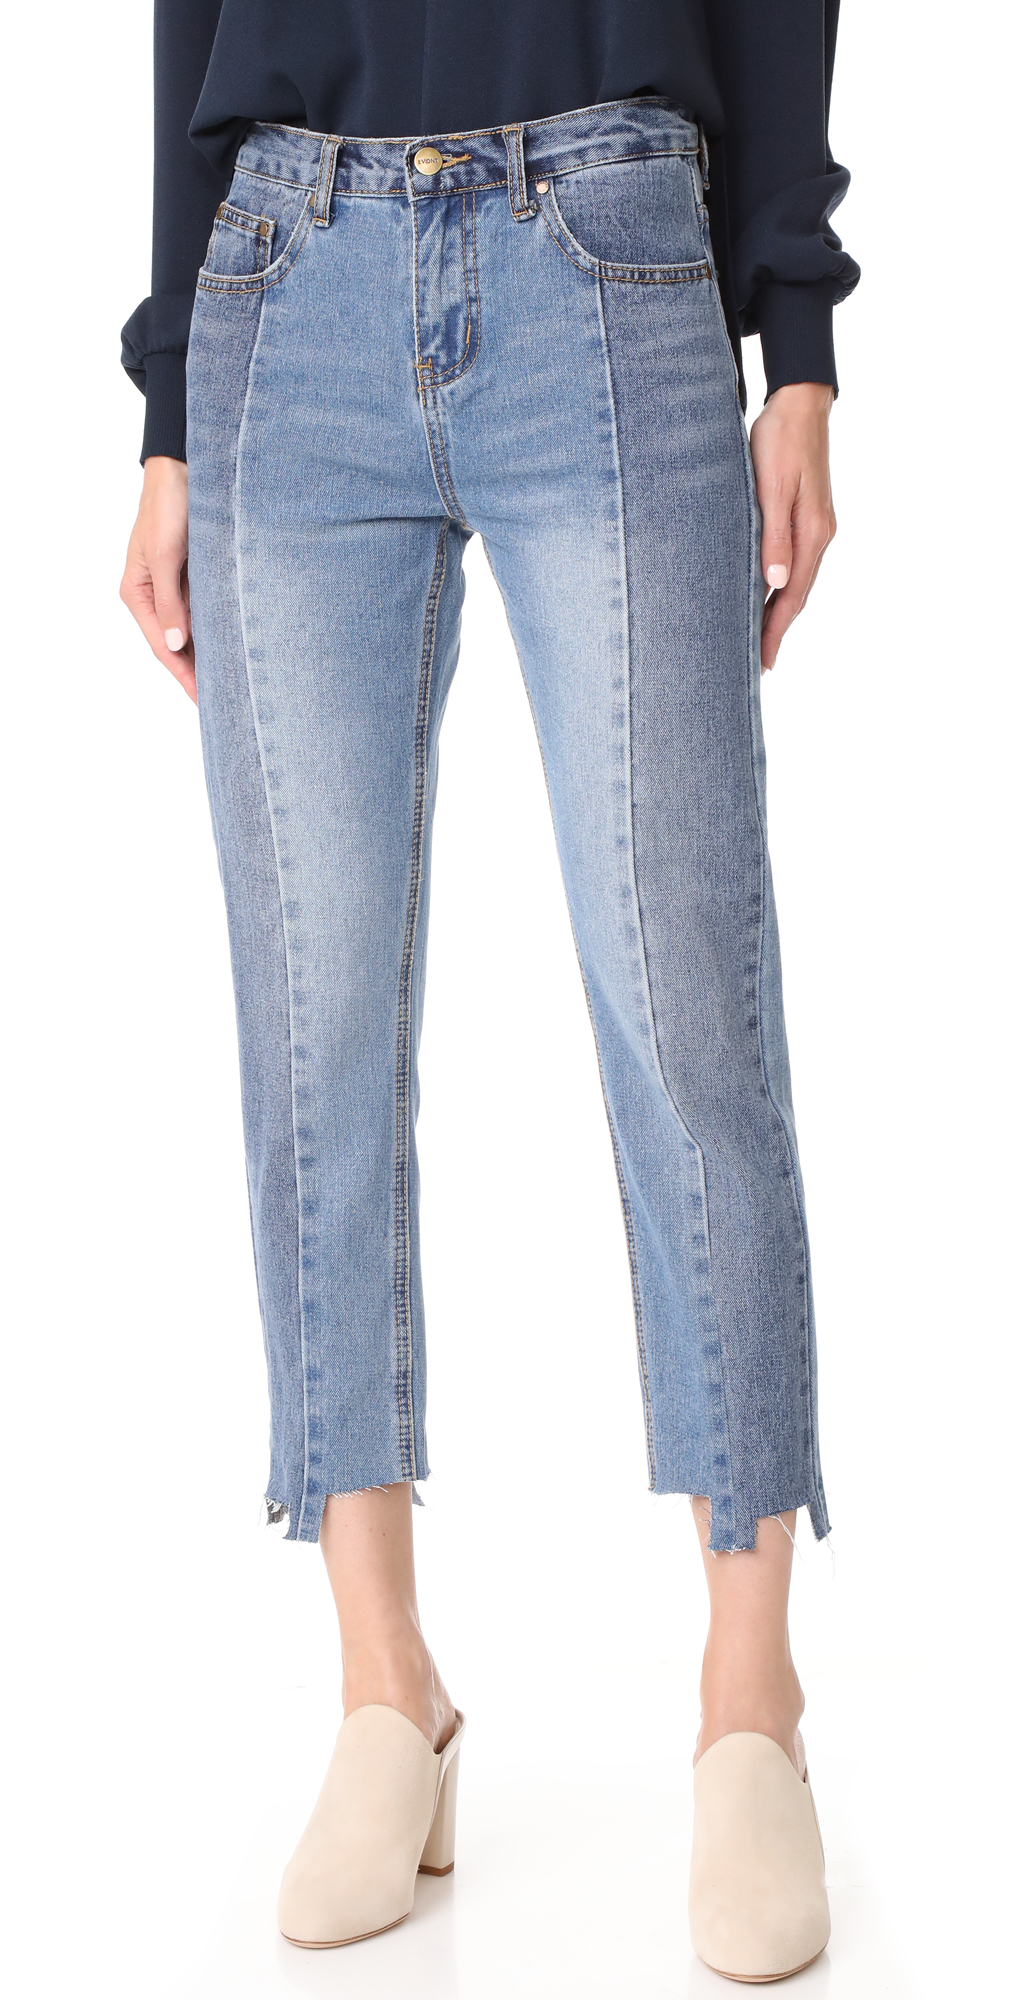 Two Tone Jeans EVIDNT